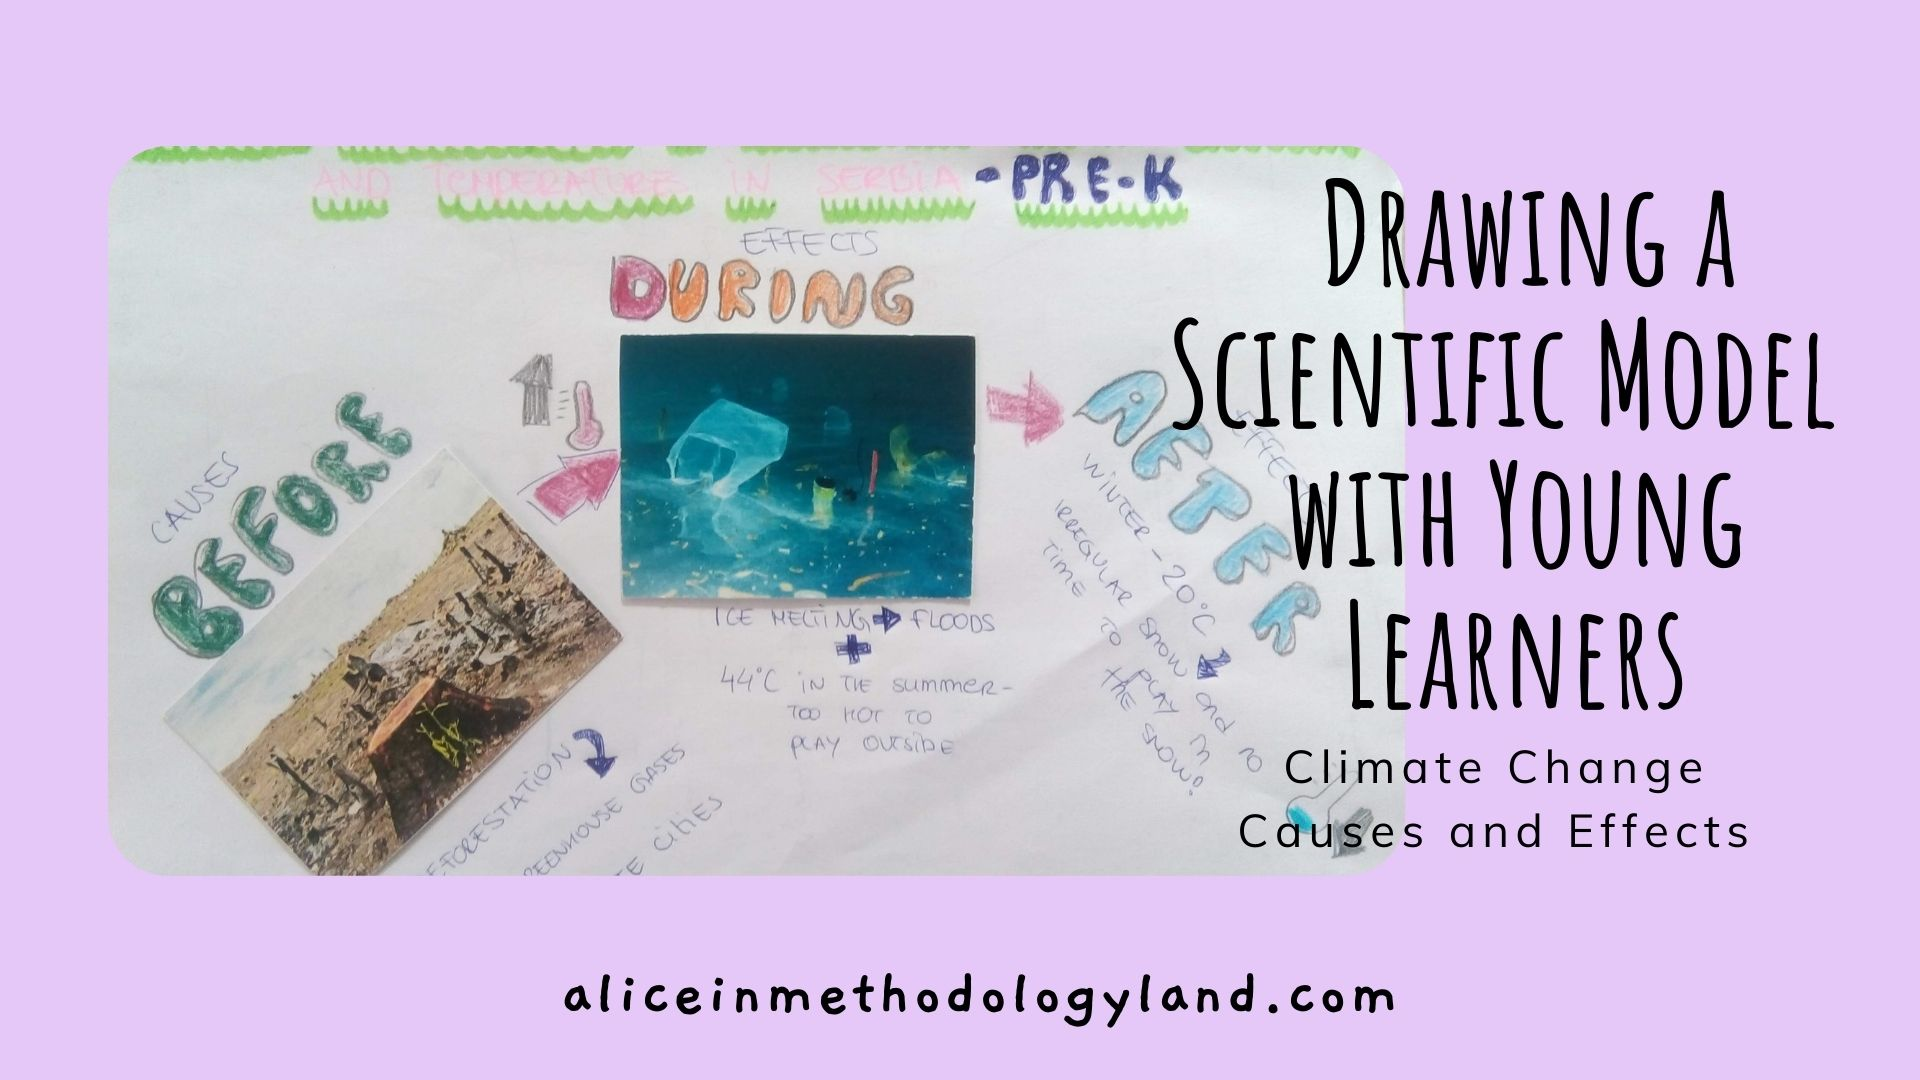 Climate Change Causes and Effects: Drawing a Scientific Model with Young Learners